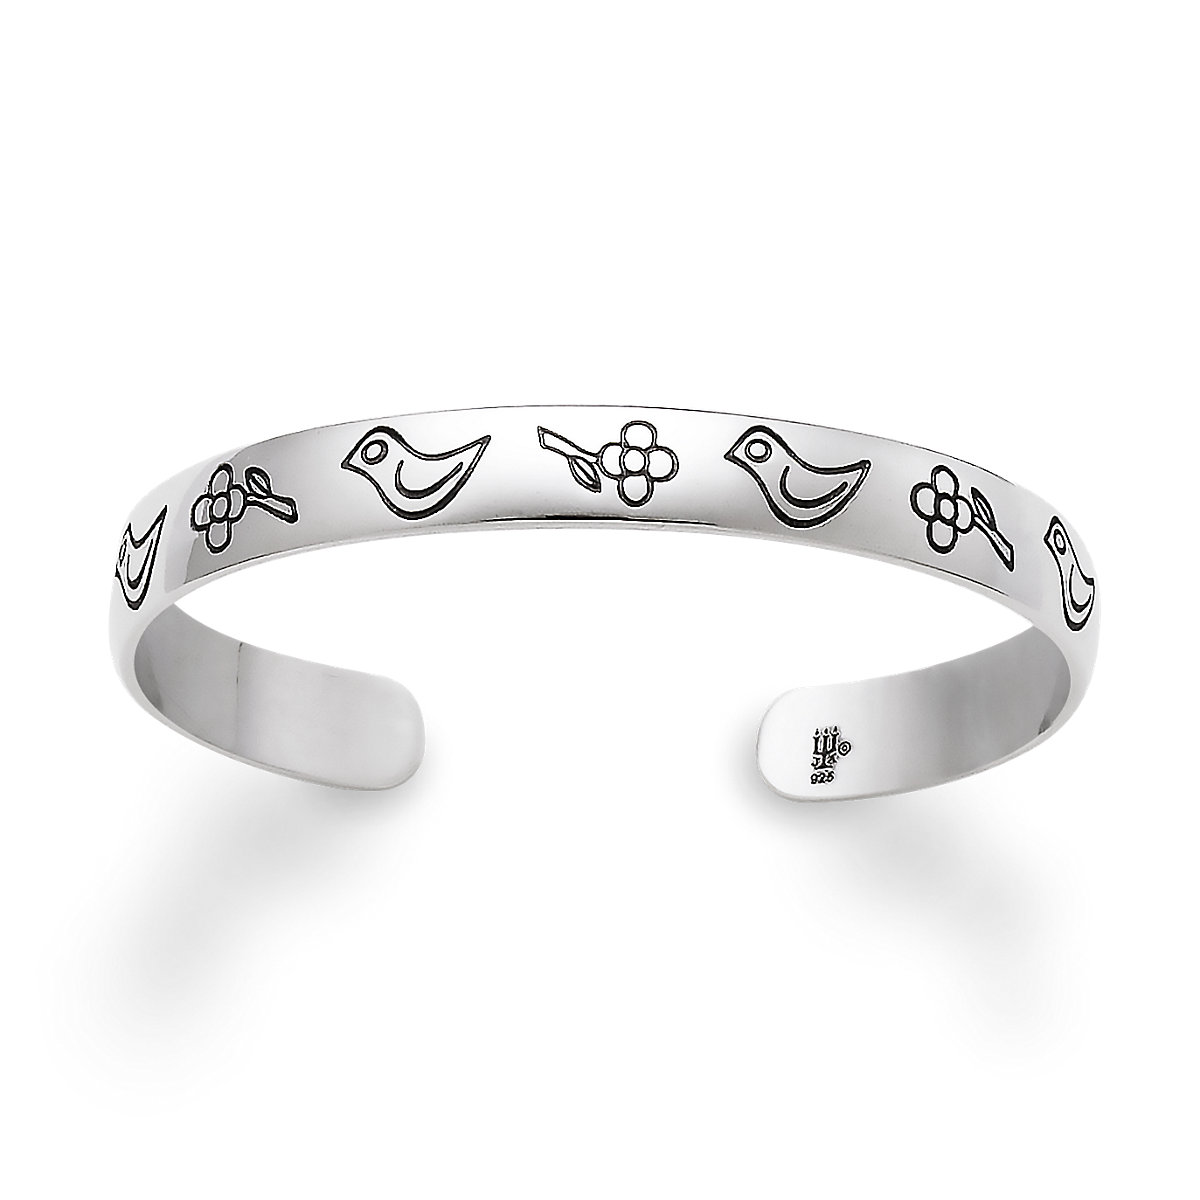 jewellery mens in baby heart rings on footprint ring hand handprint